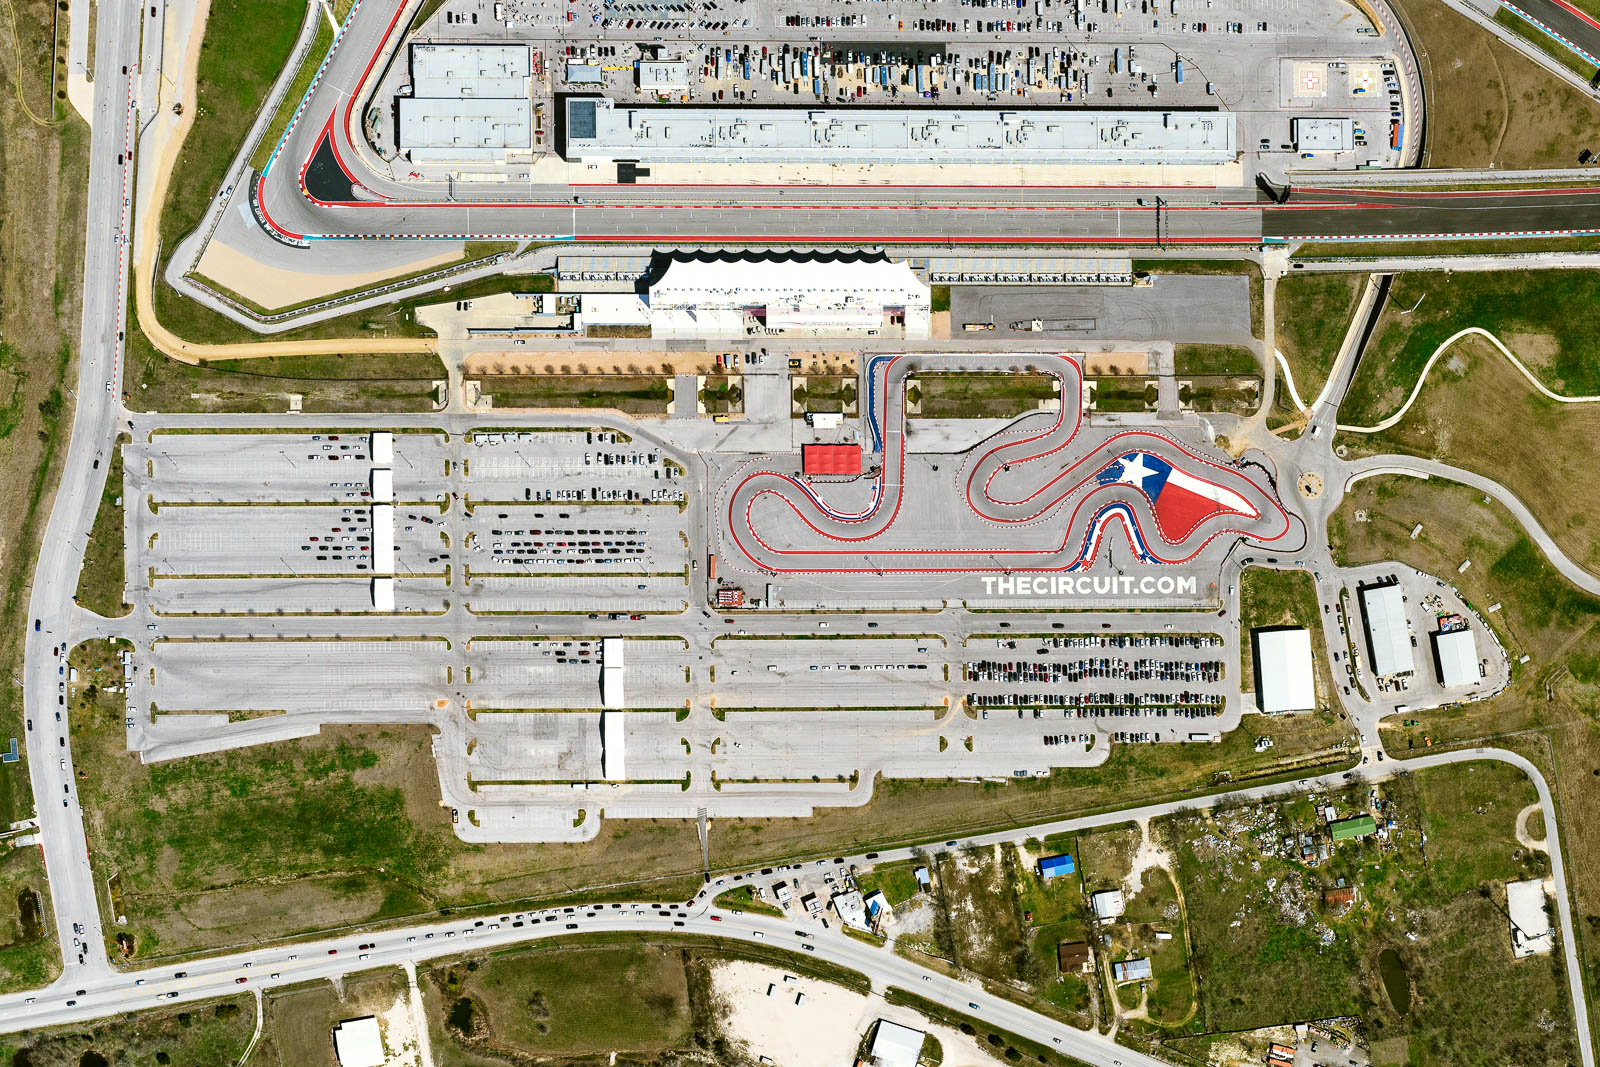 Austin's Circuit of the Americas Parking Lot A set-up as vaccination supersite